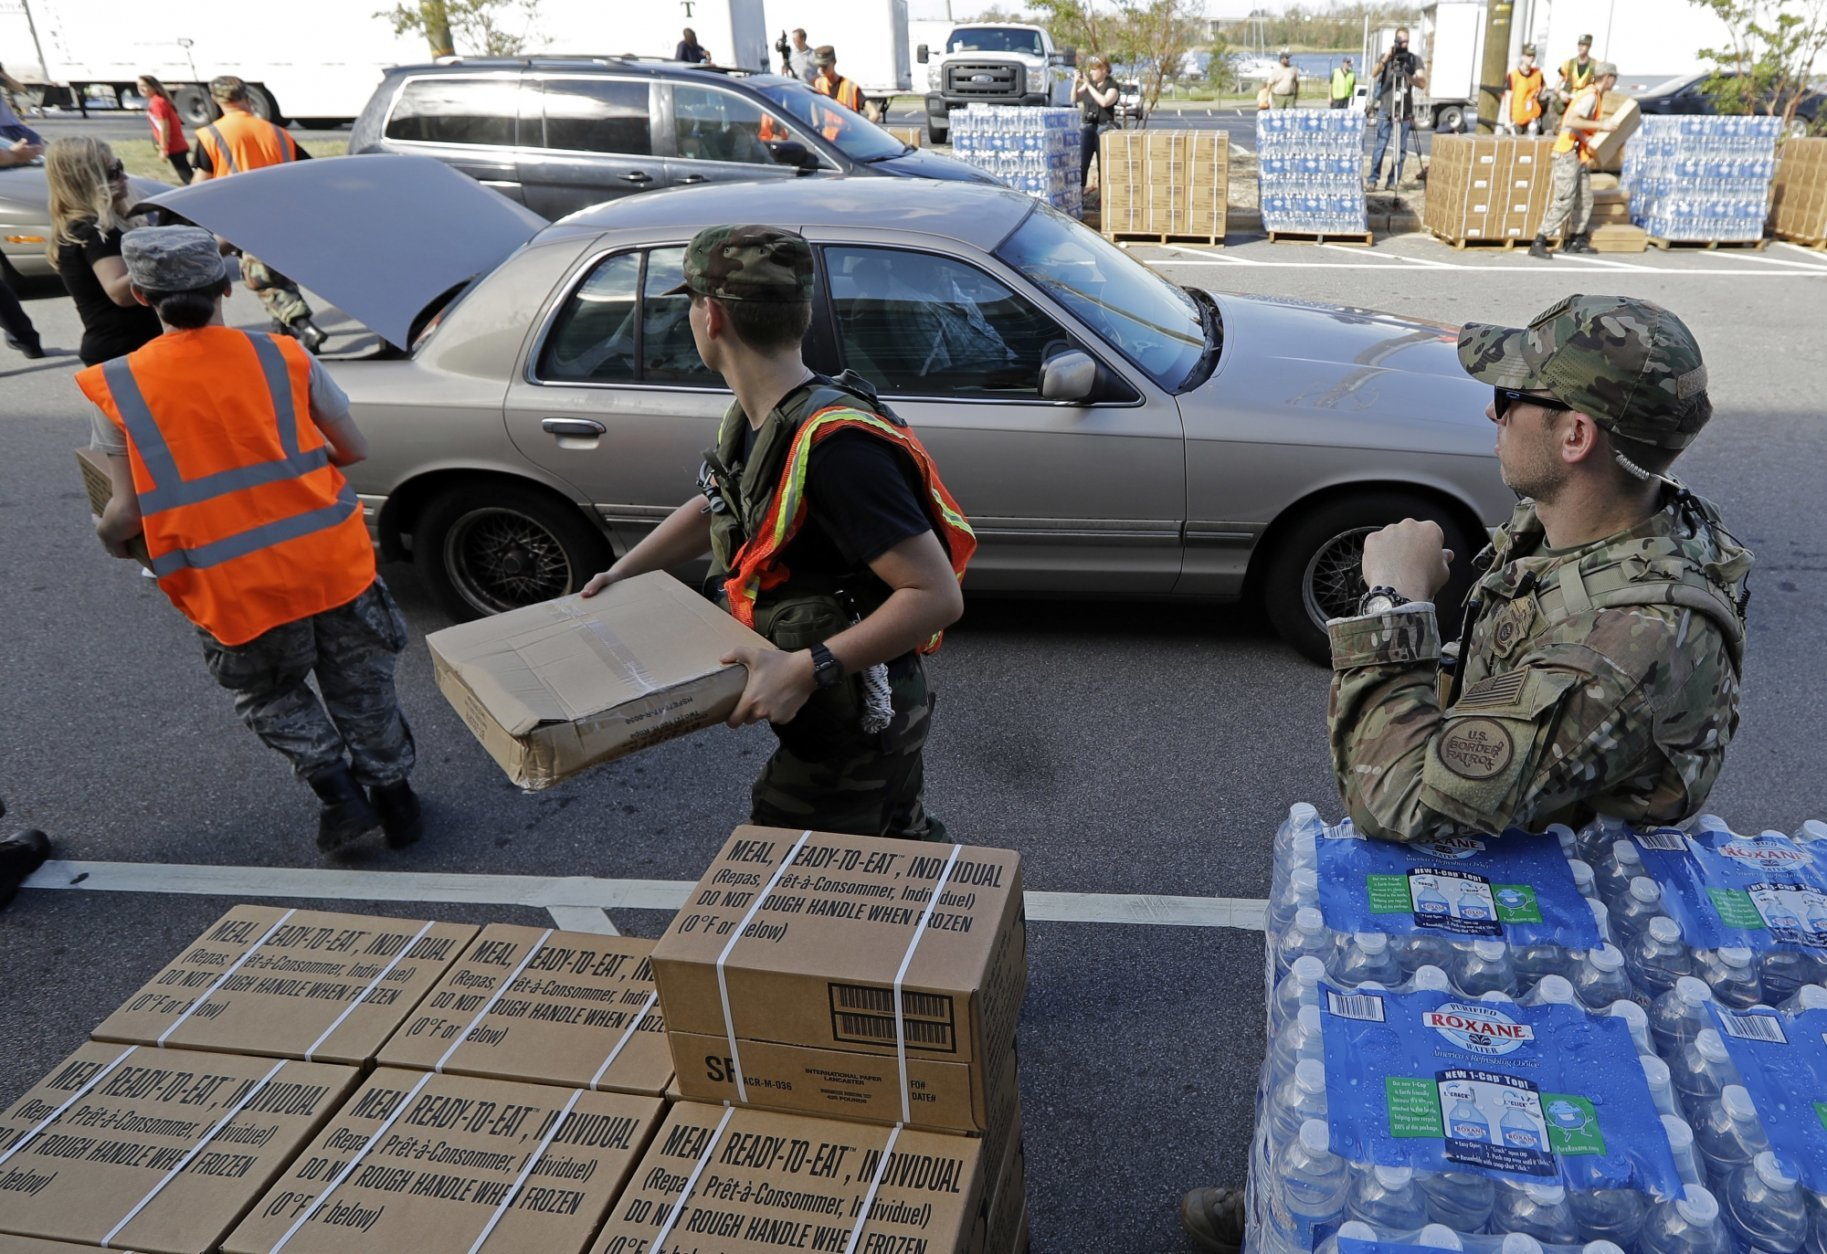 Members of the Civil Air Patrol load cars with MREs, water and tarps at distribution area in Wilmington, N.C. Tuesday, Sept. 18, 2018. (AP Photo/Chuck Burton)